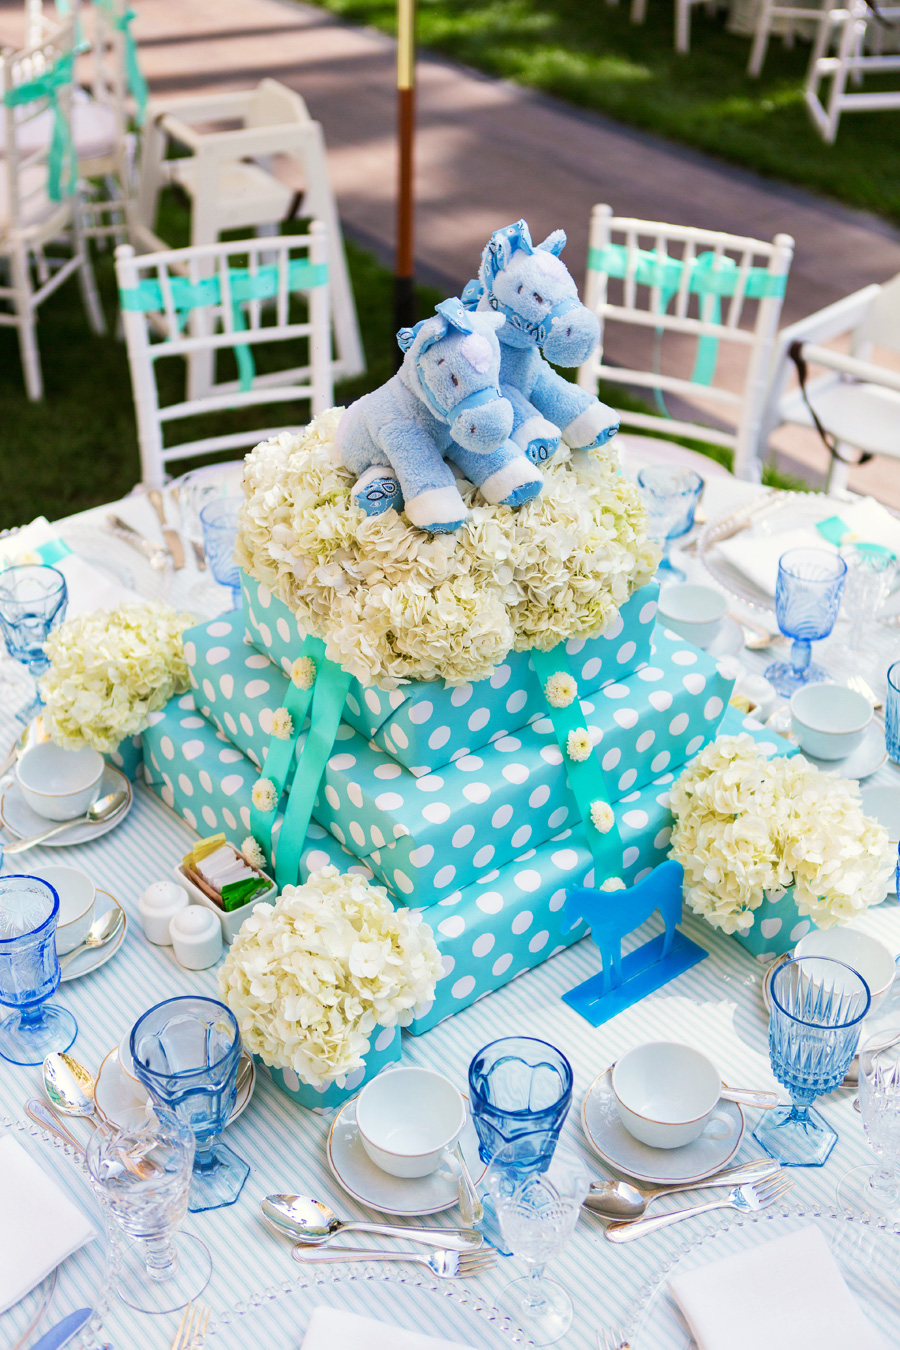 twins-birthday-party-centerpiece-idea Top 10 Most Unique and Funny Wedding Cake Toppers 2019